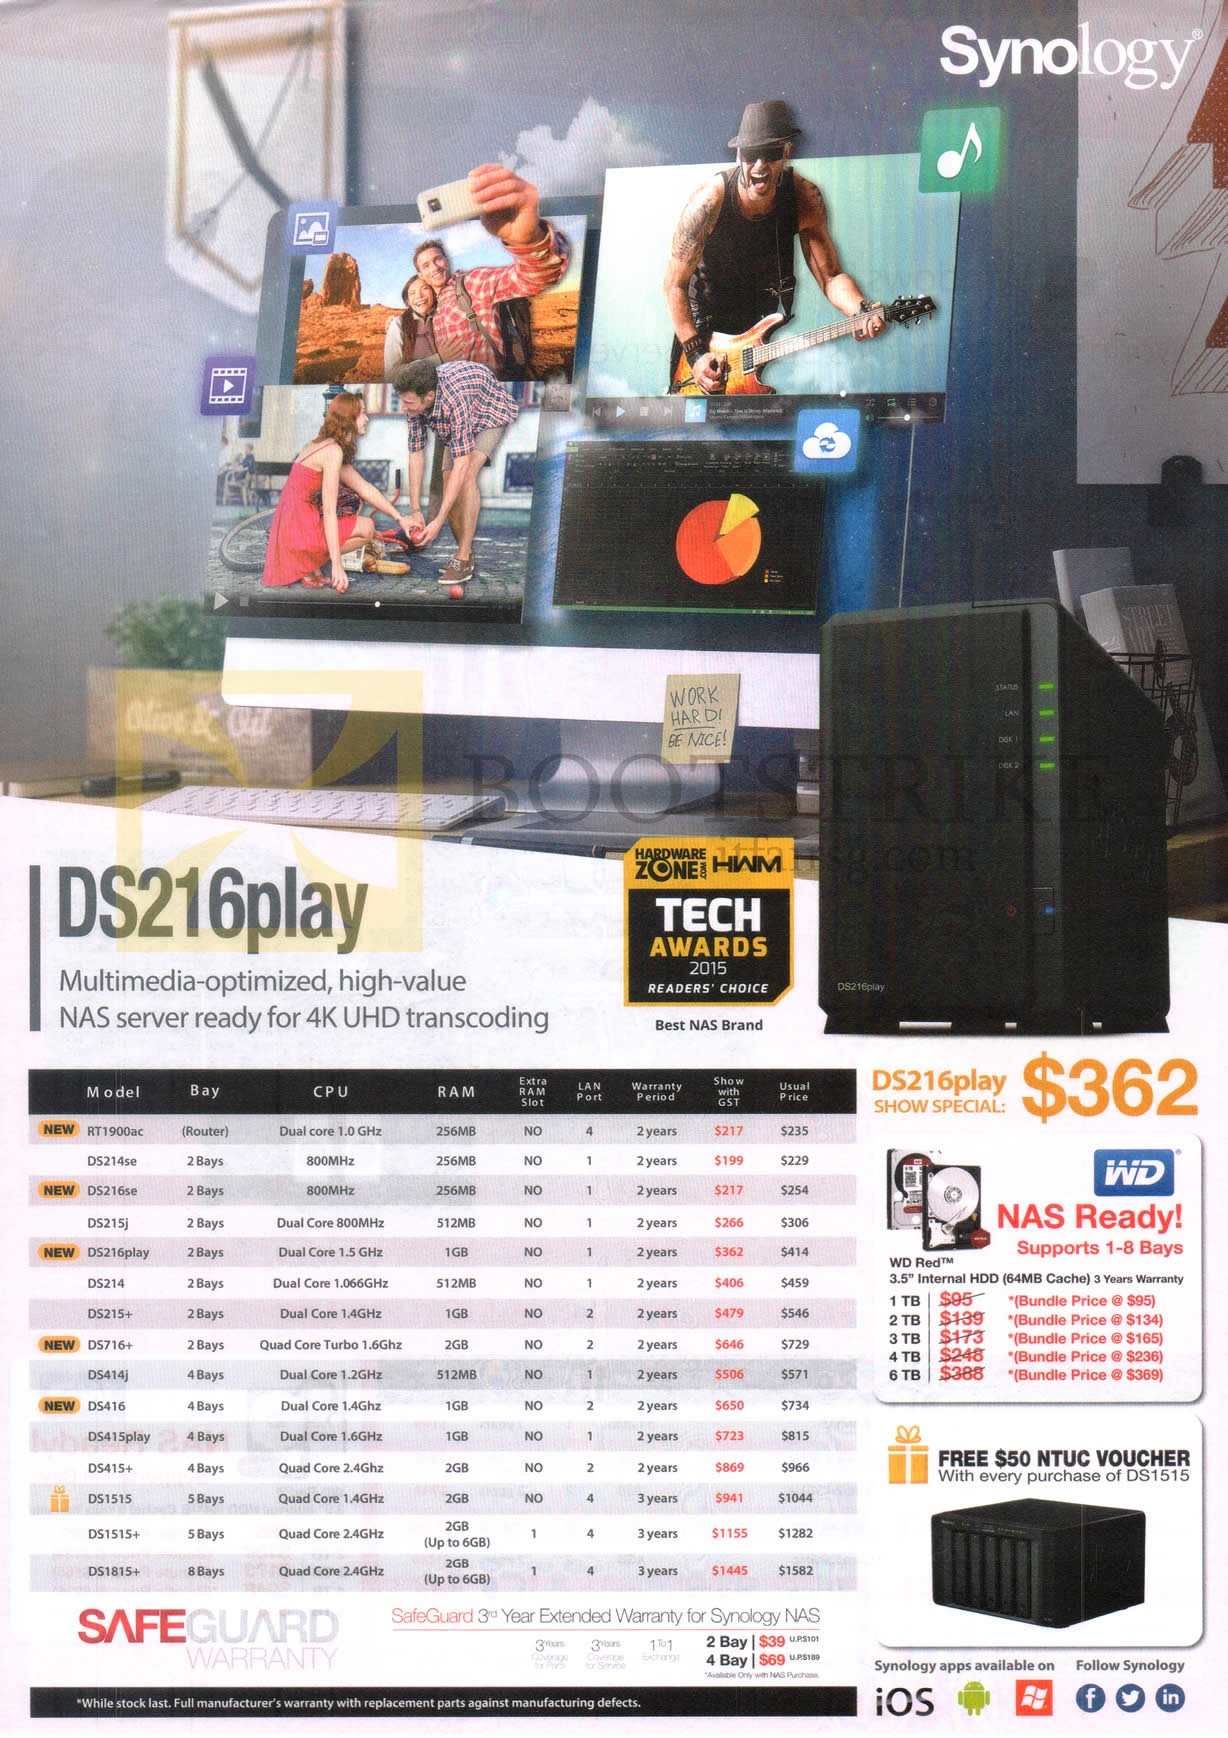 SITEX 2015 price list image brochure of Synology NAS DS216play High Value NAS Servers